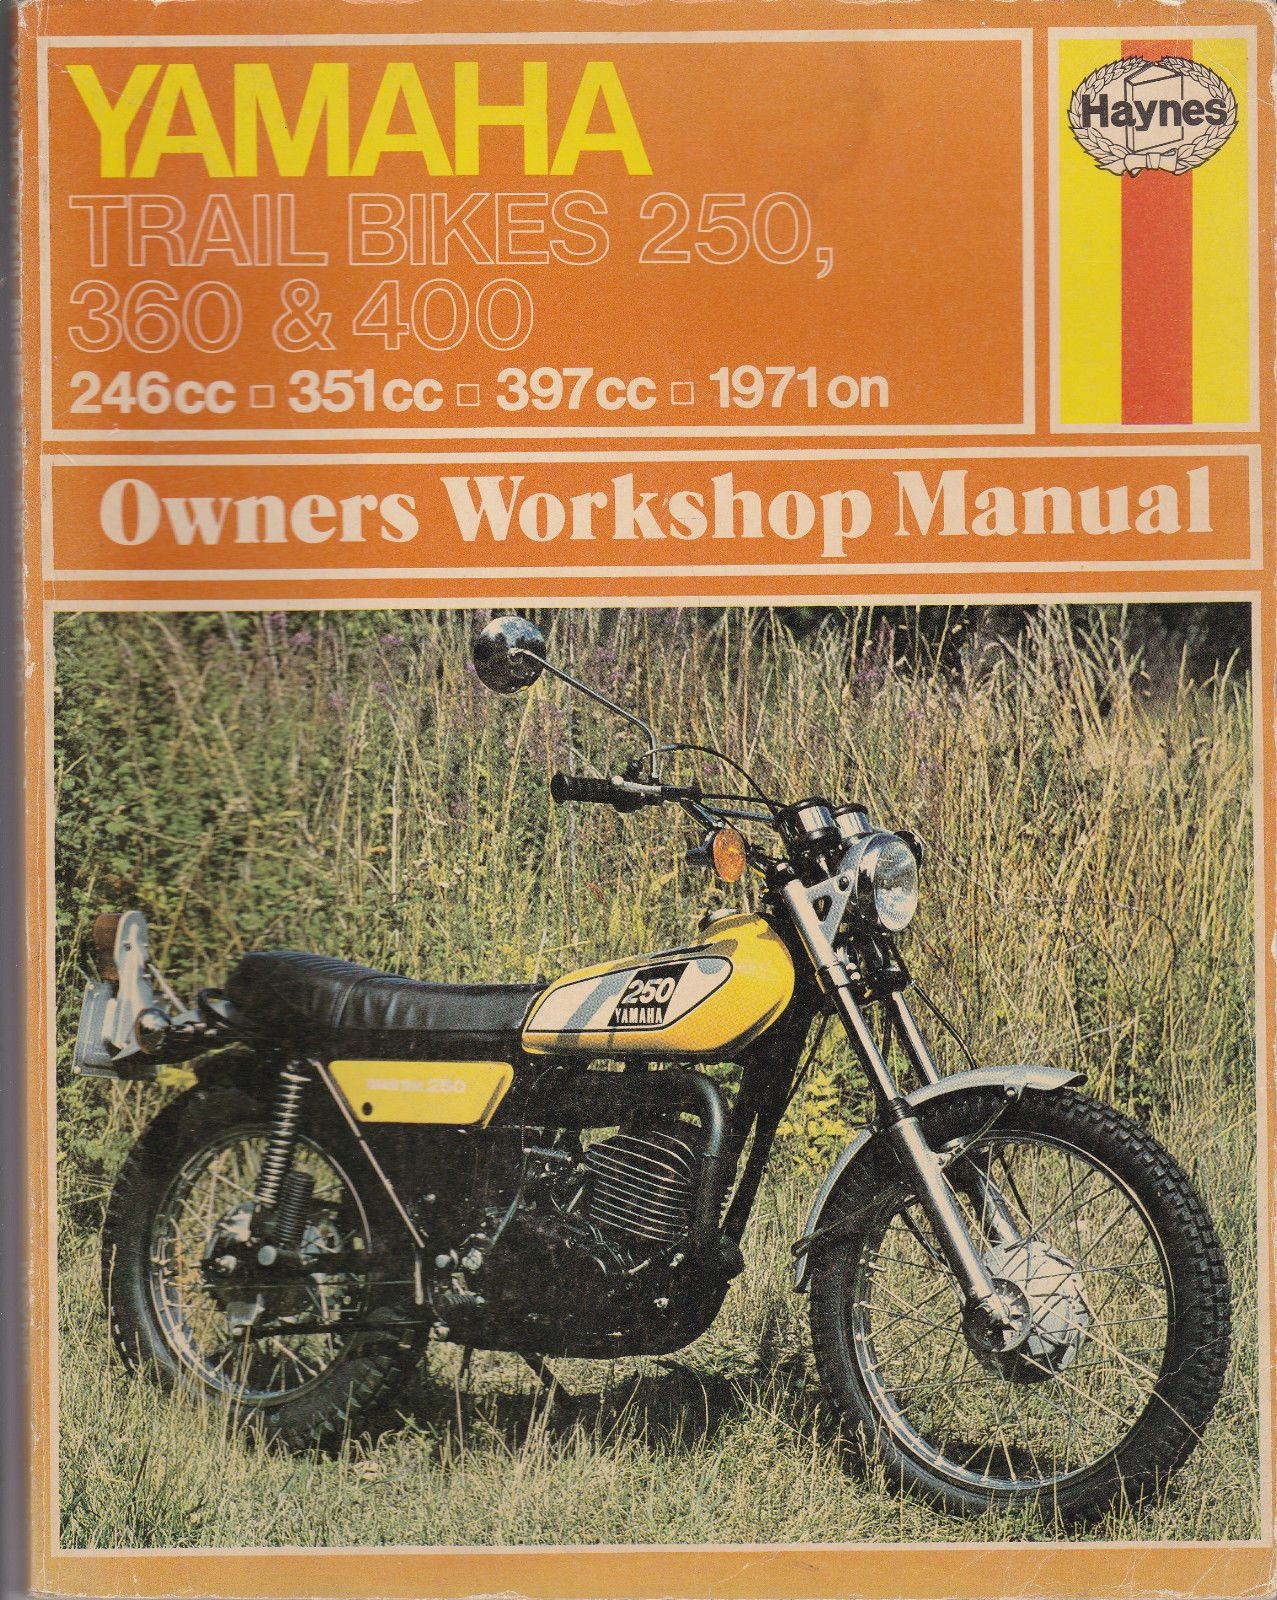 Yamaha Trial Bike 250 360 400 Used Haynes Workshop Manual 1971 on Ref 263 |  eBay